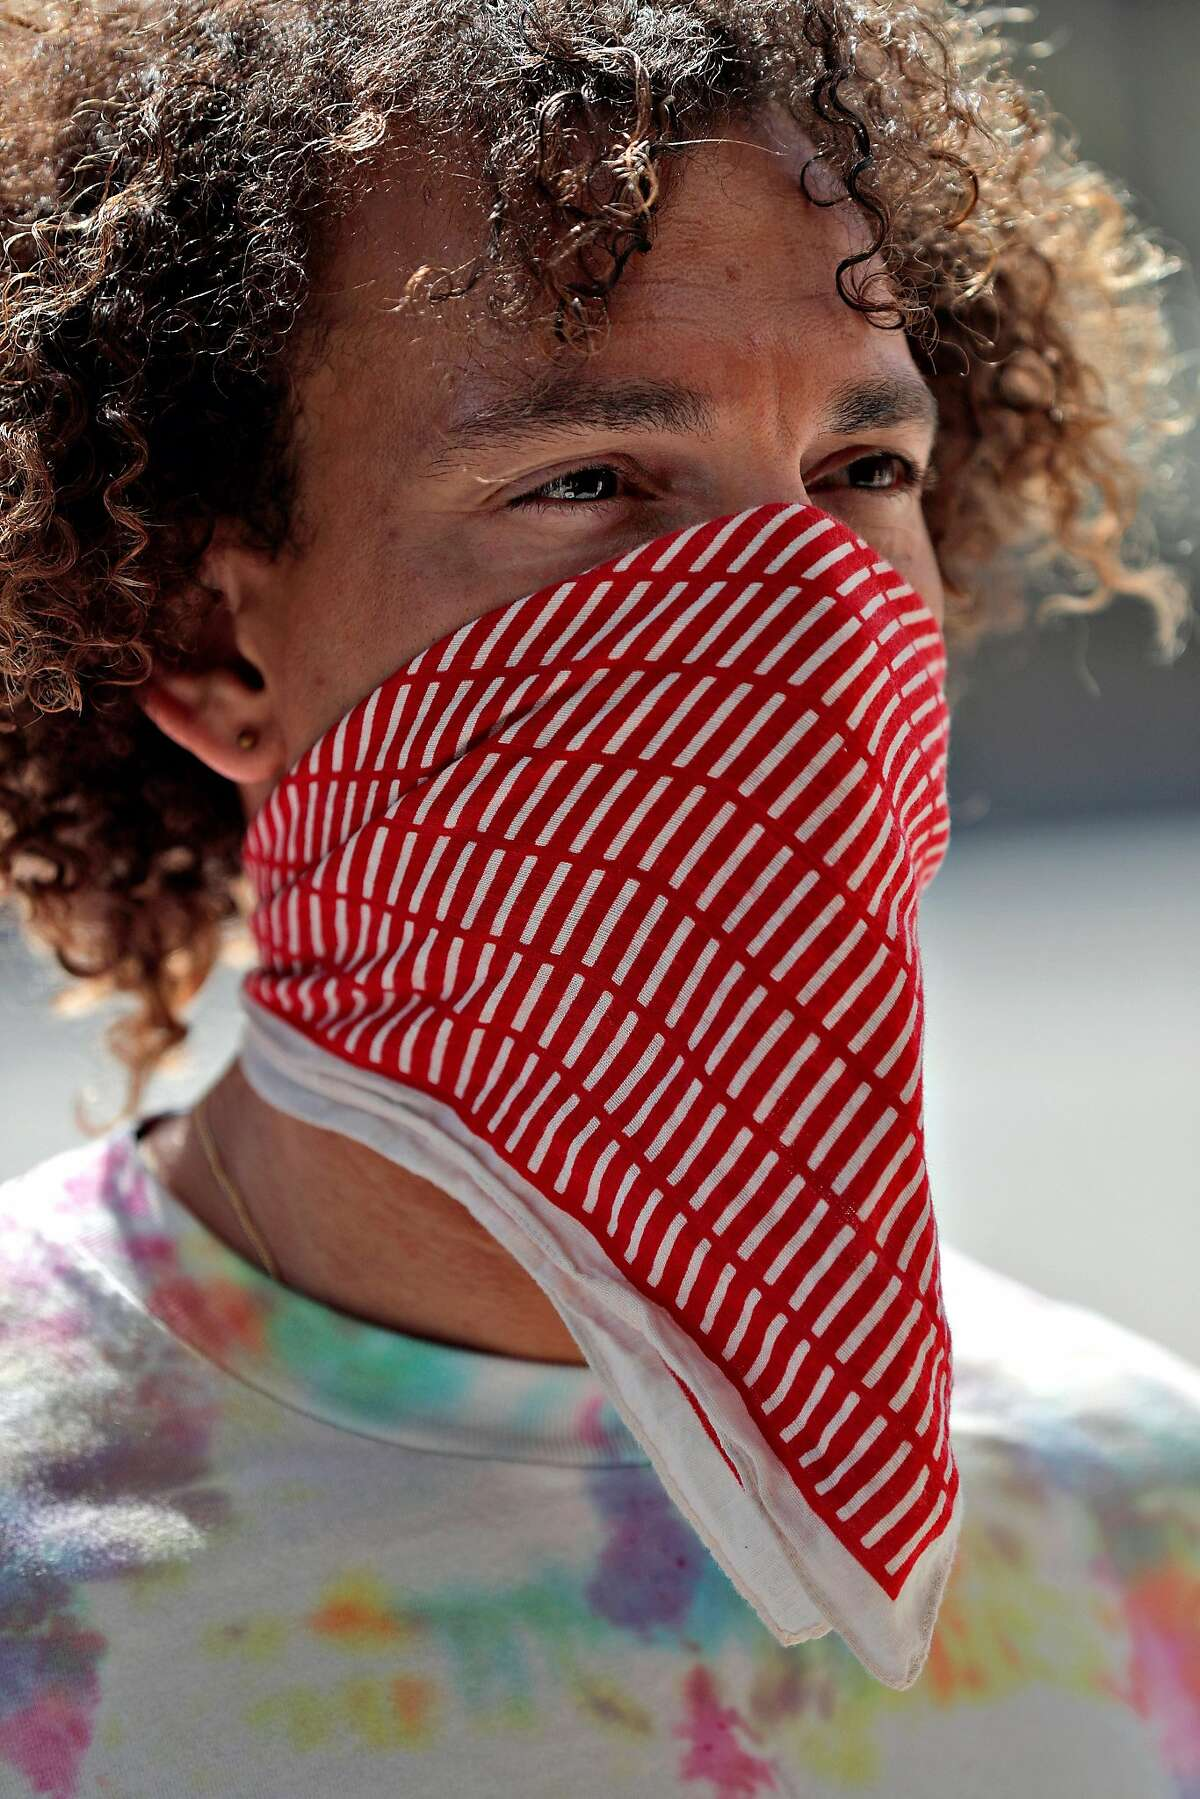 Solomon Eversole wearing a mask made of a folded handkerchief with a piece of polyester cloth between the two folds in Monclair Village in Oakland, Calif., on Tuesday, June 30, 2020. As more positive test results show a spike in the coronavirus infections, people wanting to get outside are wearing masks to prevent the spread of the disease.